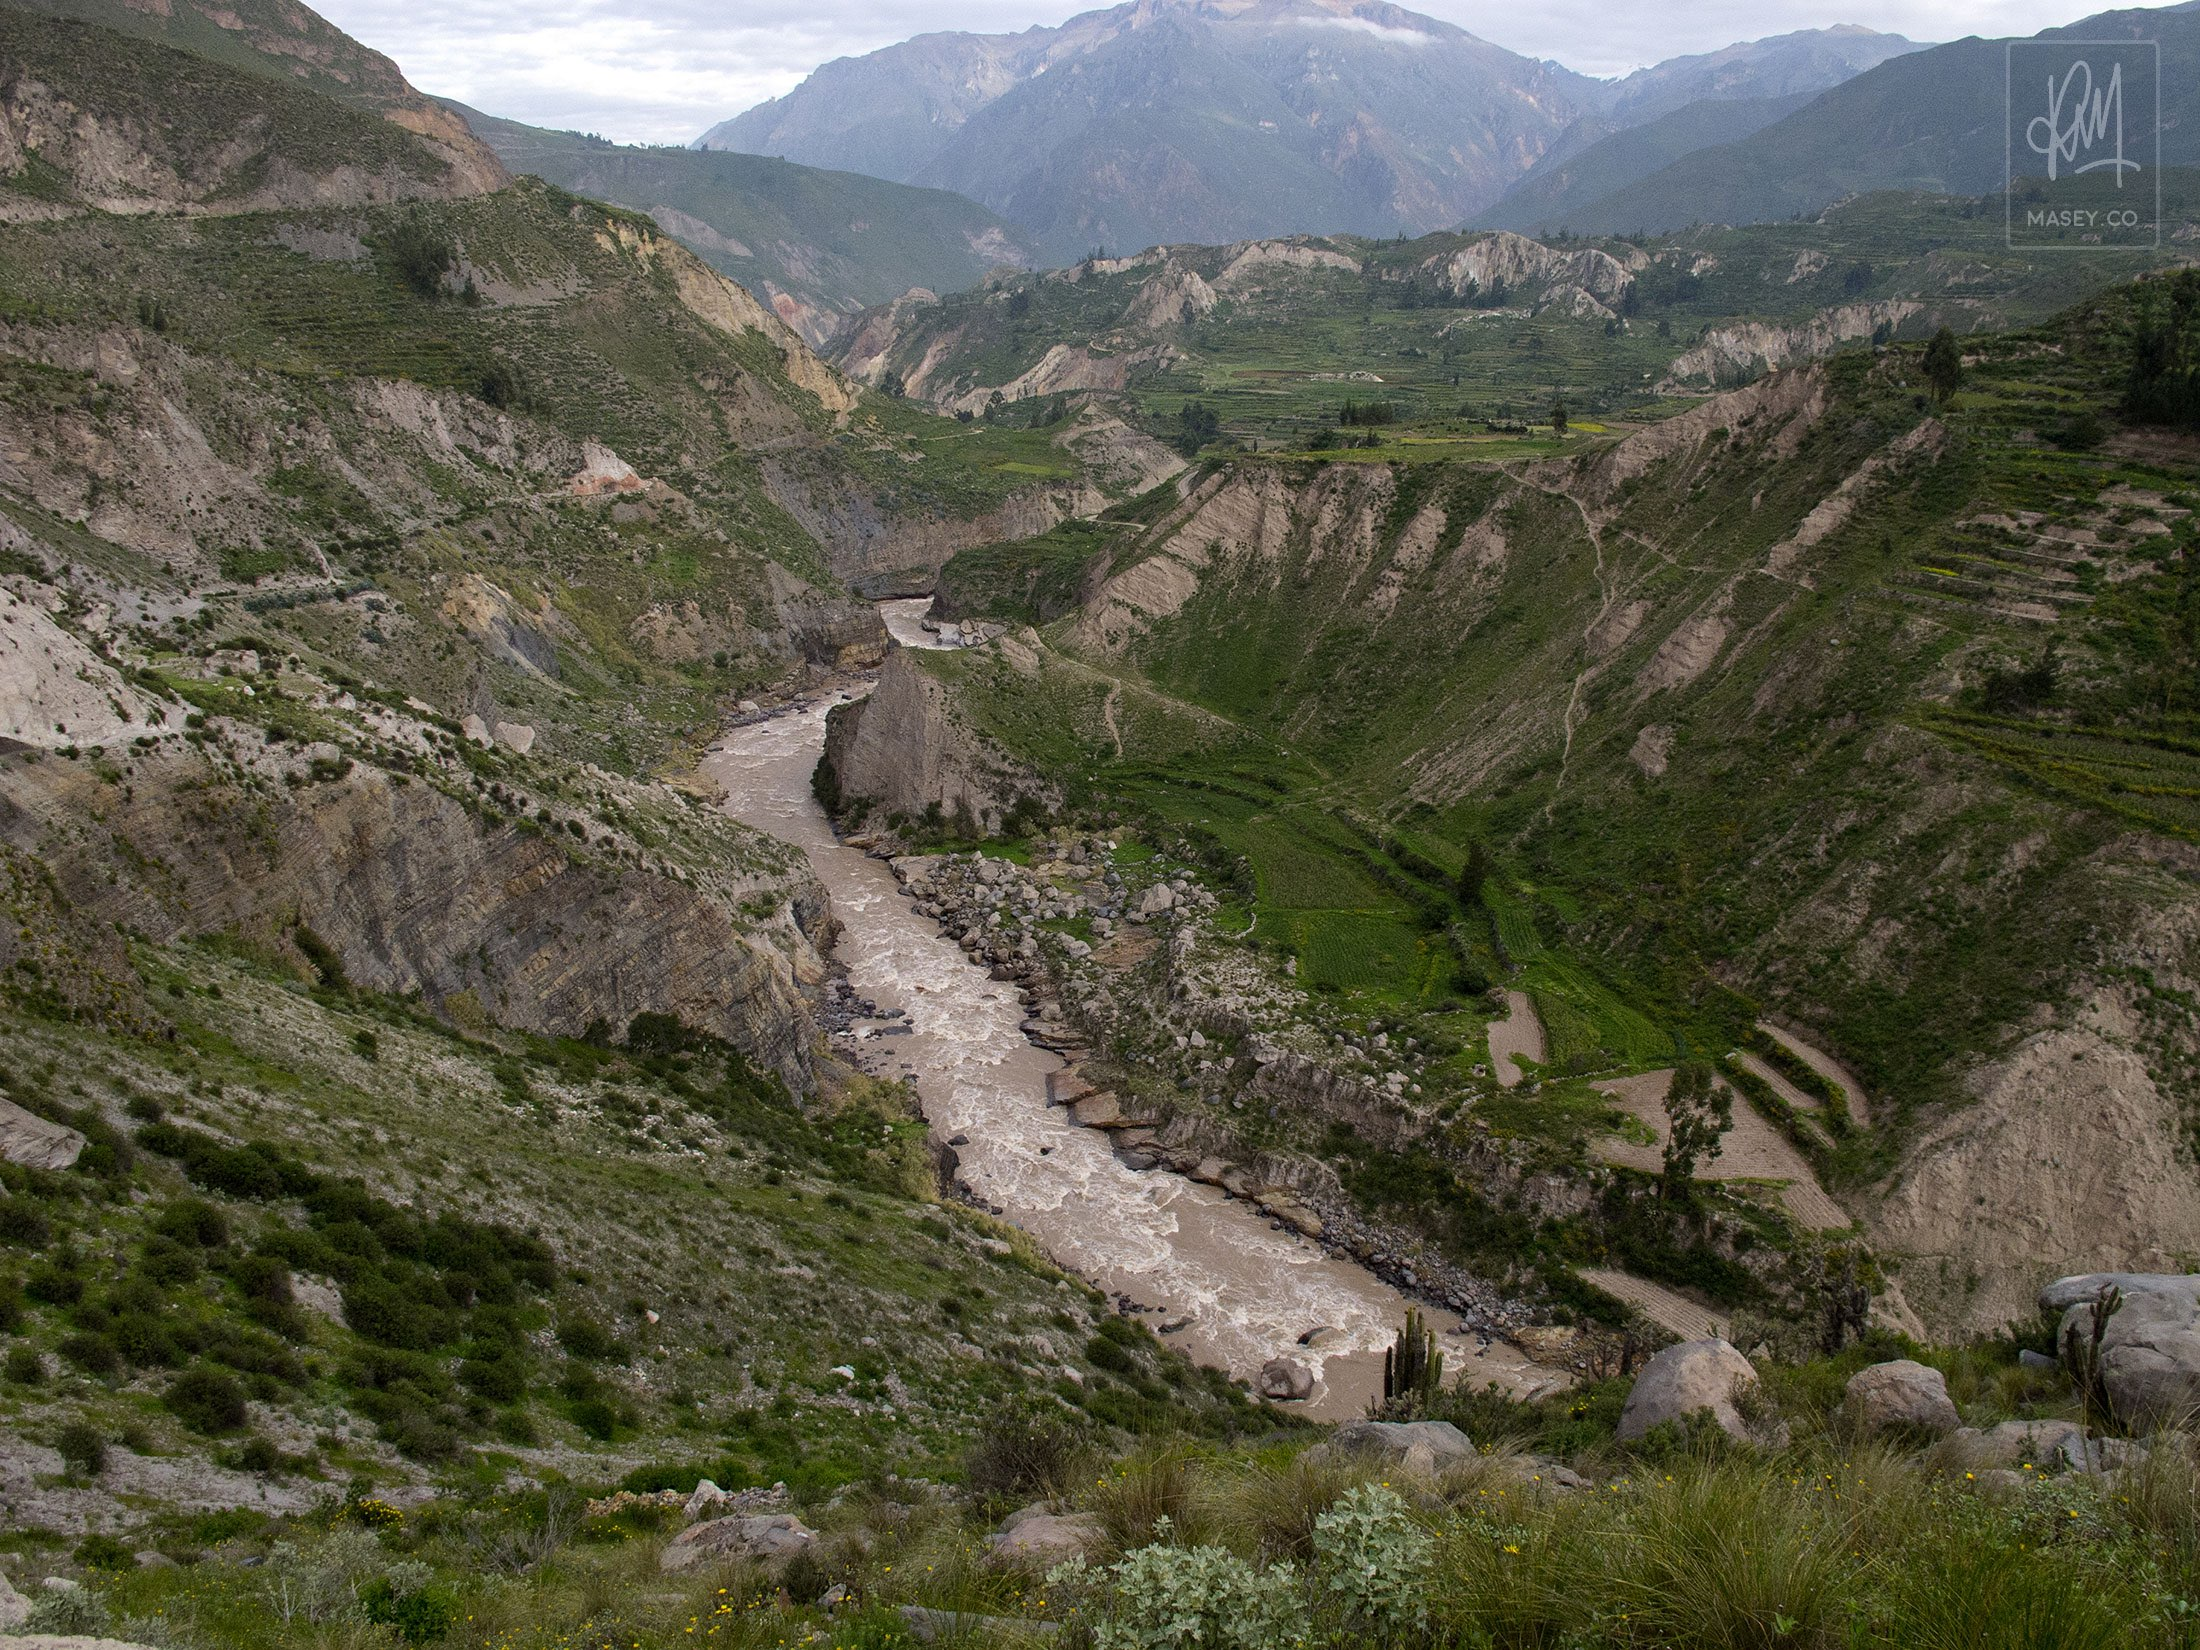 G Adventures South America: Day 7 - Colca Canyon